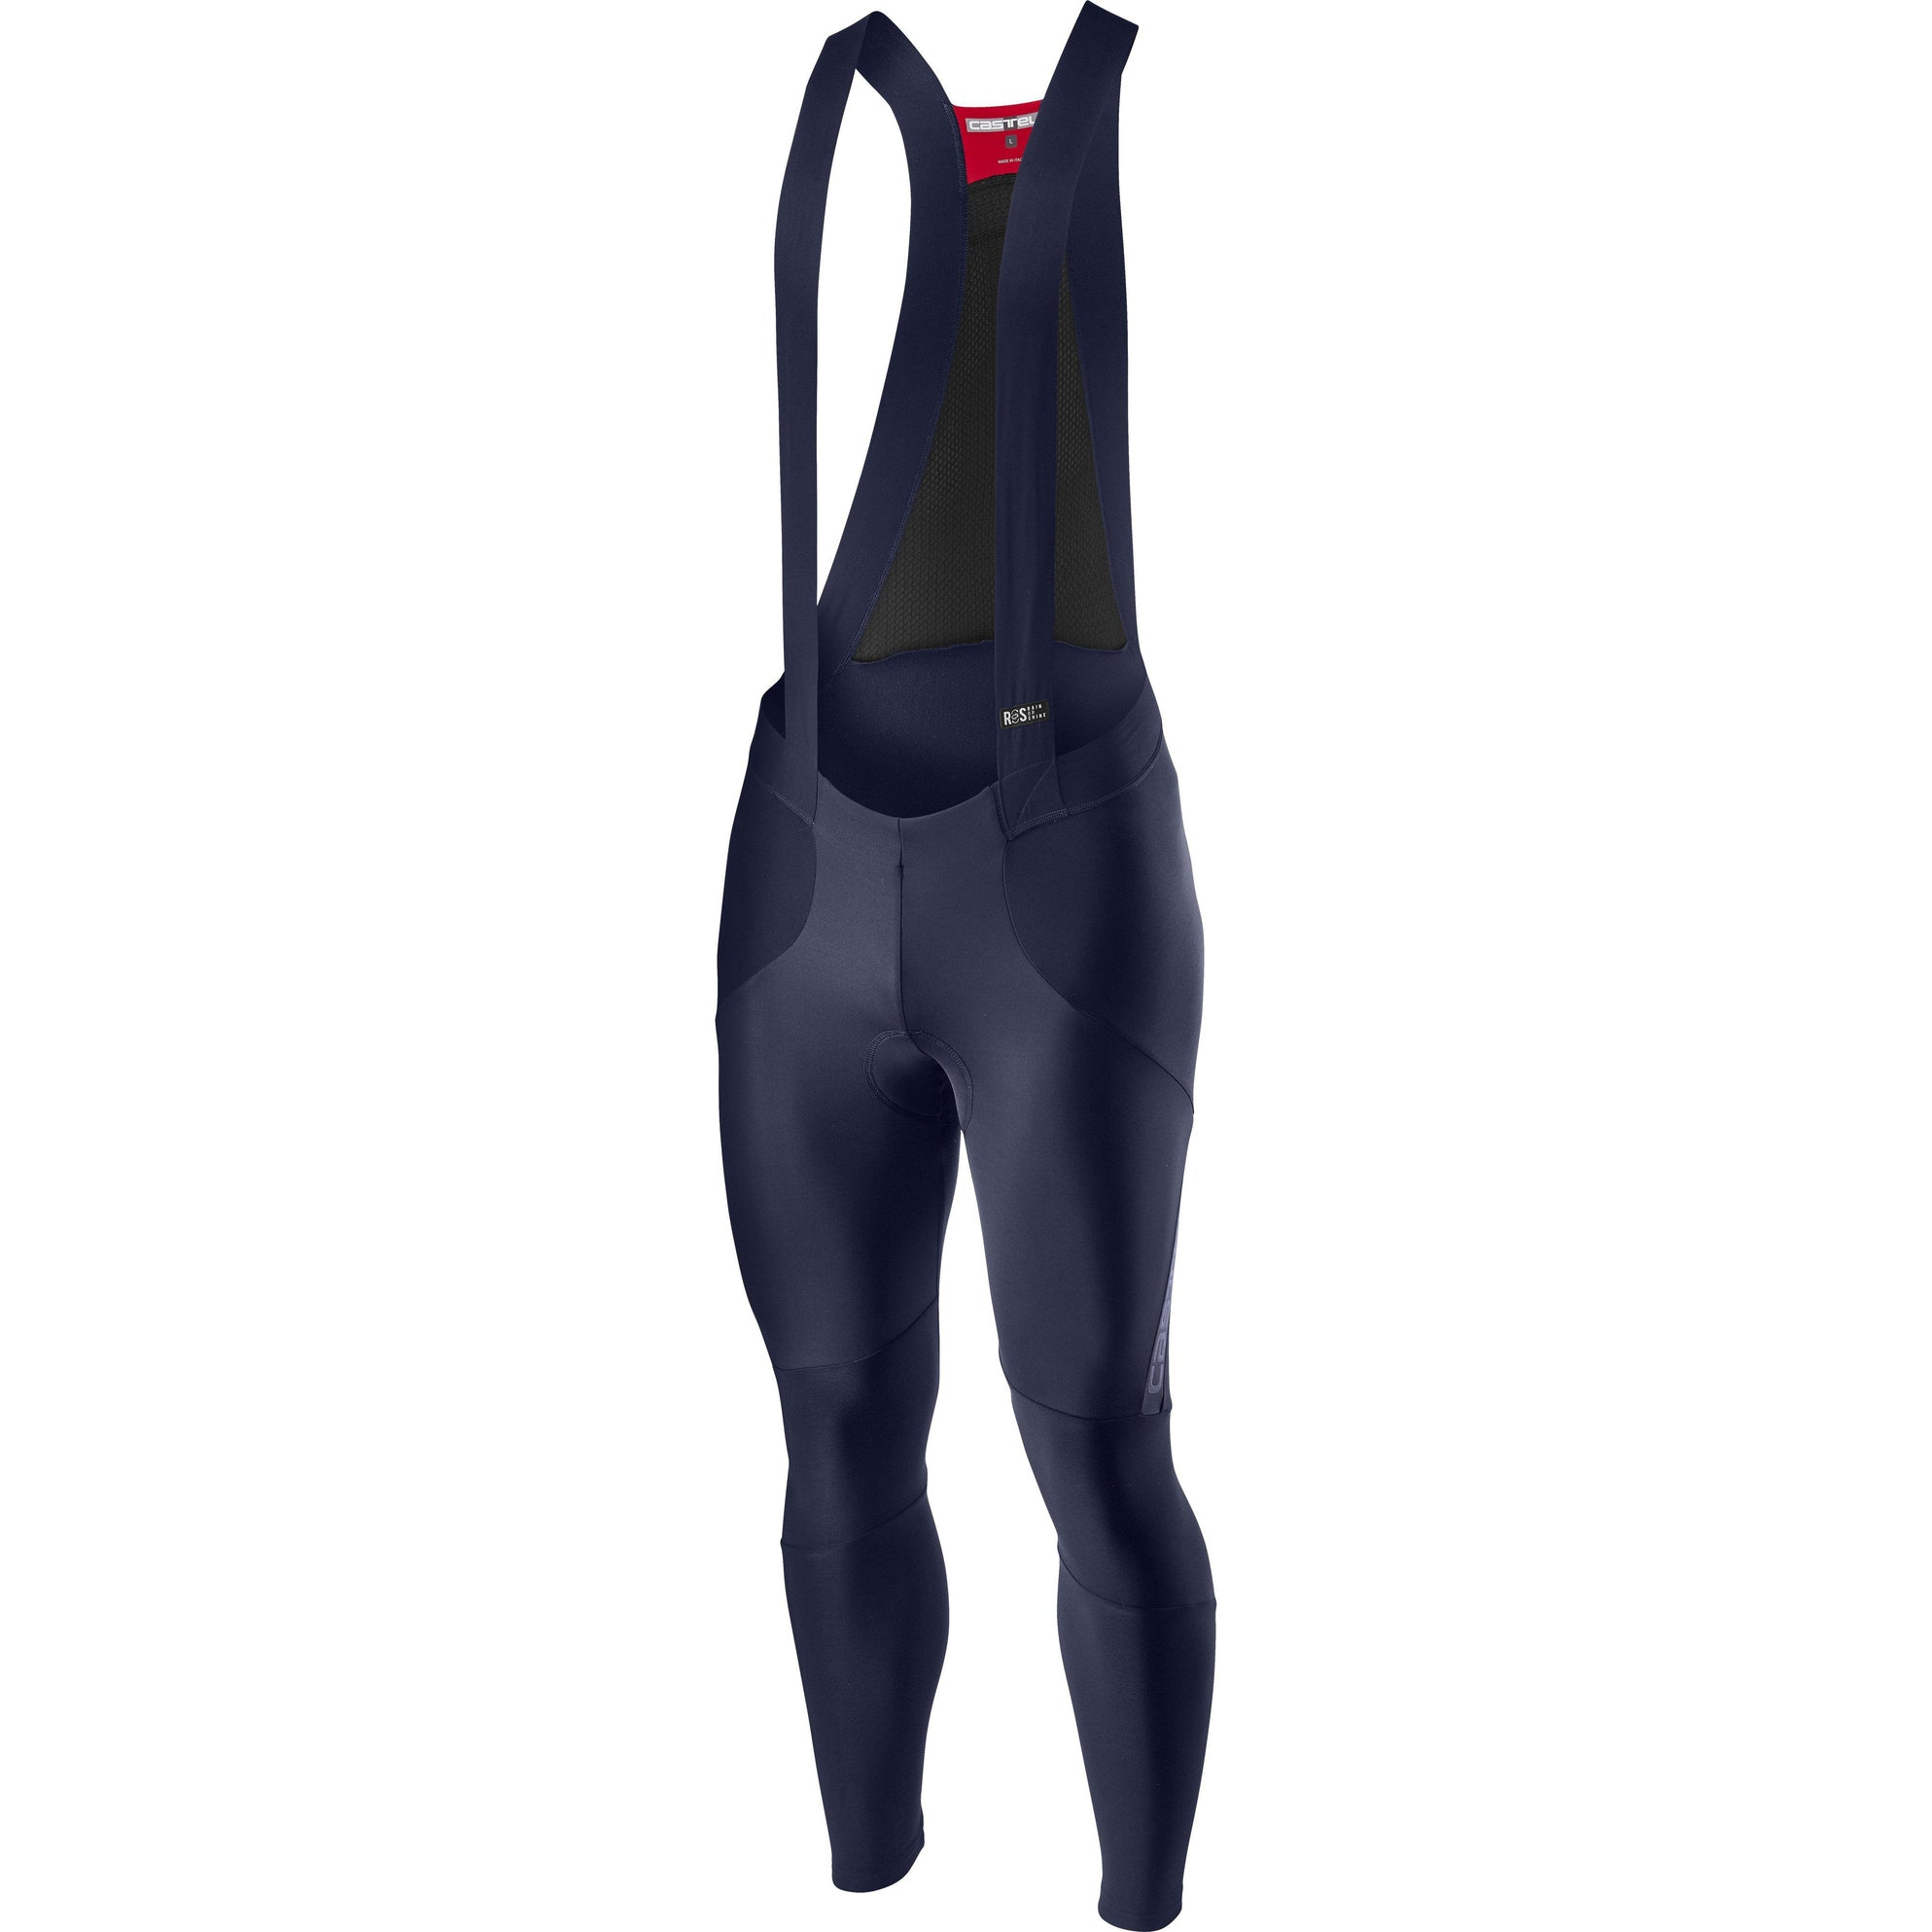 Castelli-Castelli Sorpasso RoS Bibtights-Savile Blue-S-CS205224142-saddleback-elite-performance-cycling